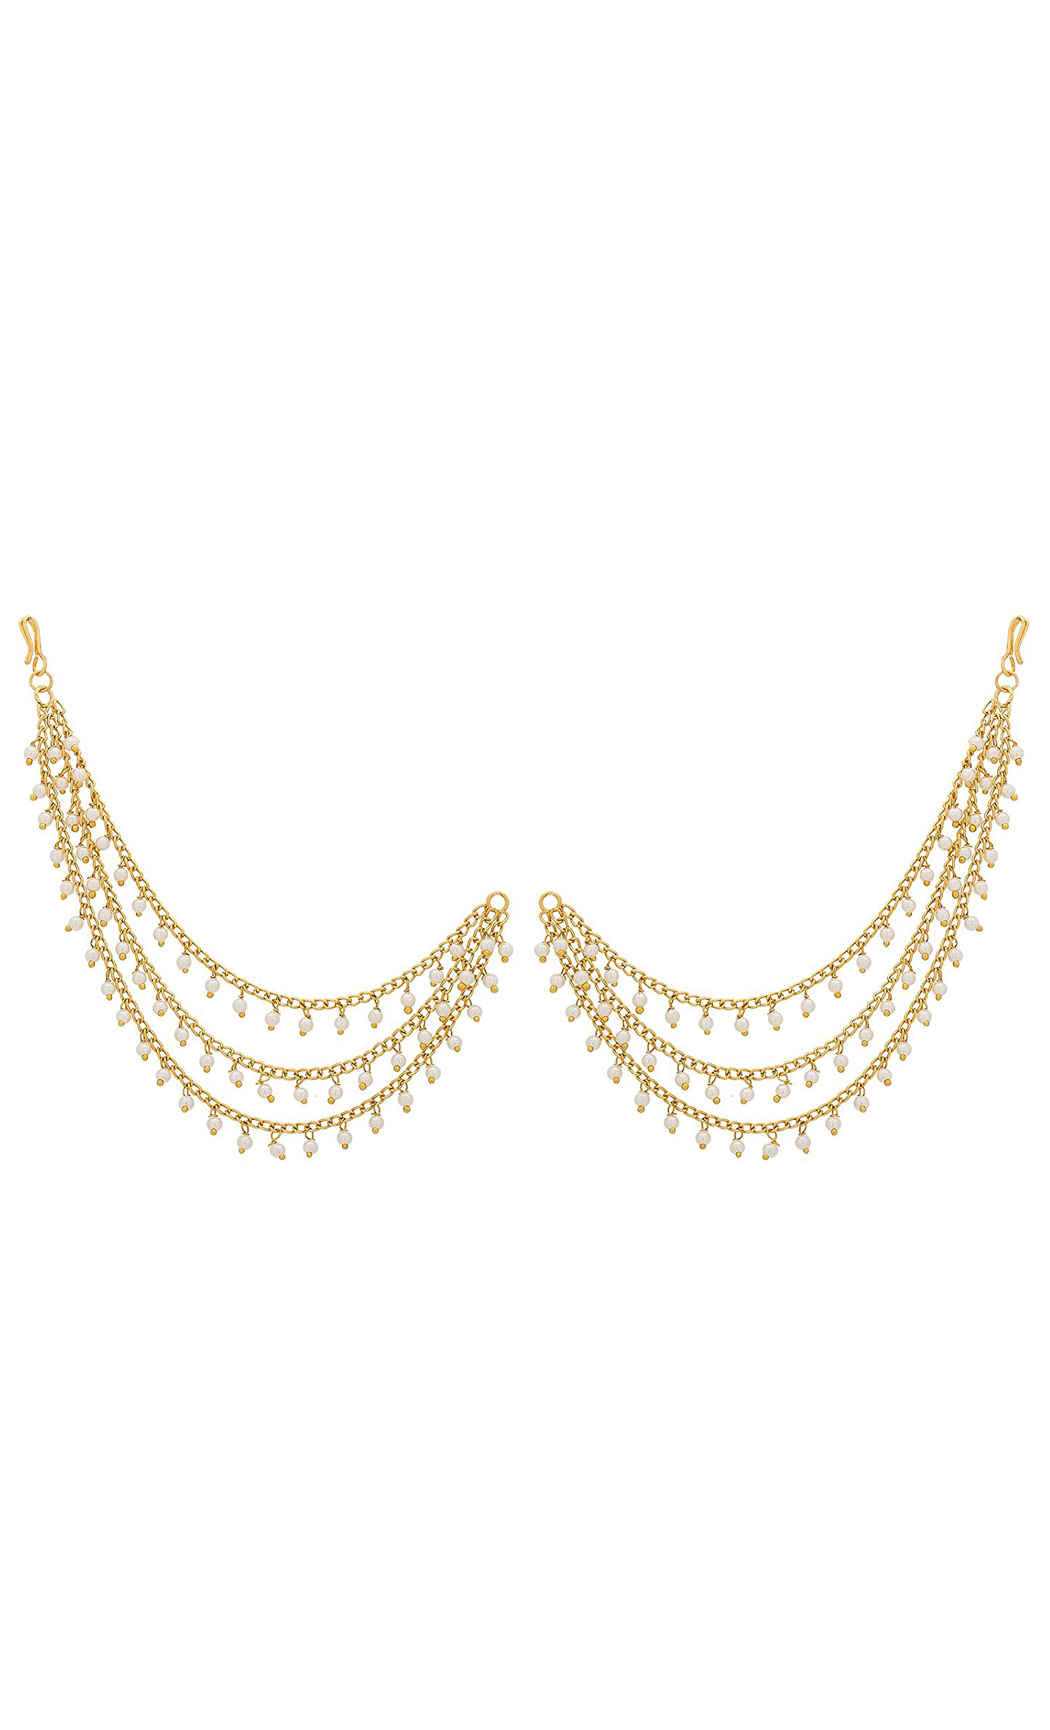 Gold Plated Pearl Earring Chains | Wedding Earrings | Buy Online